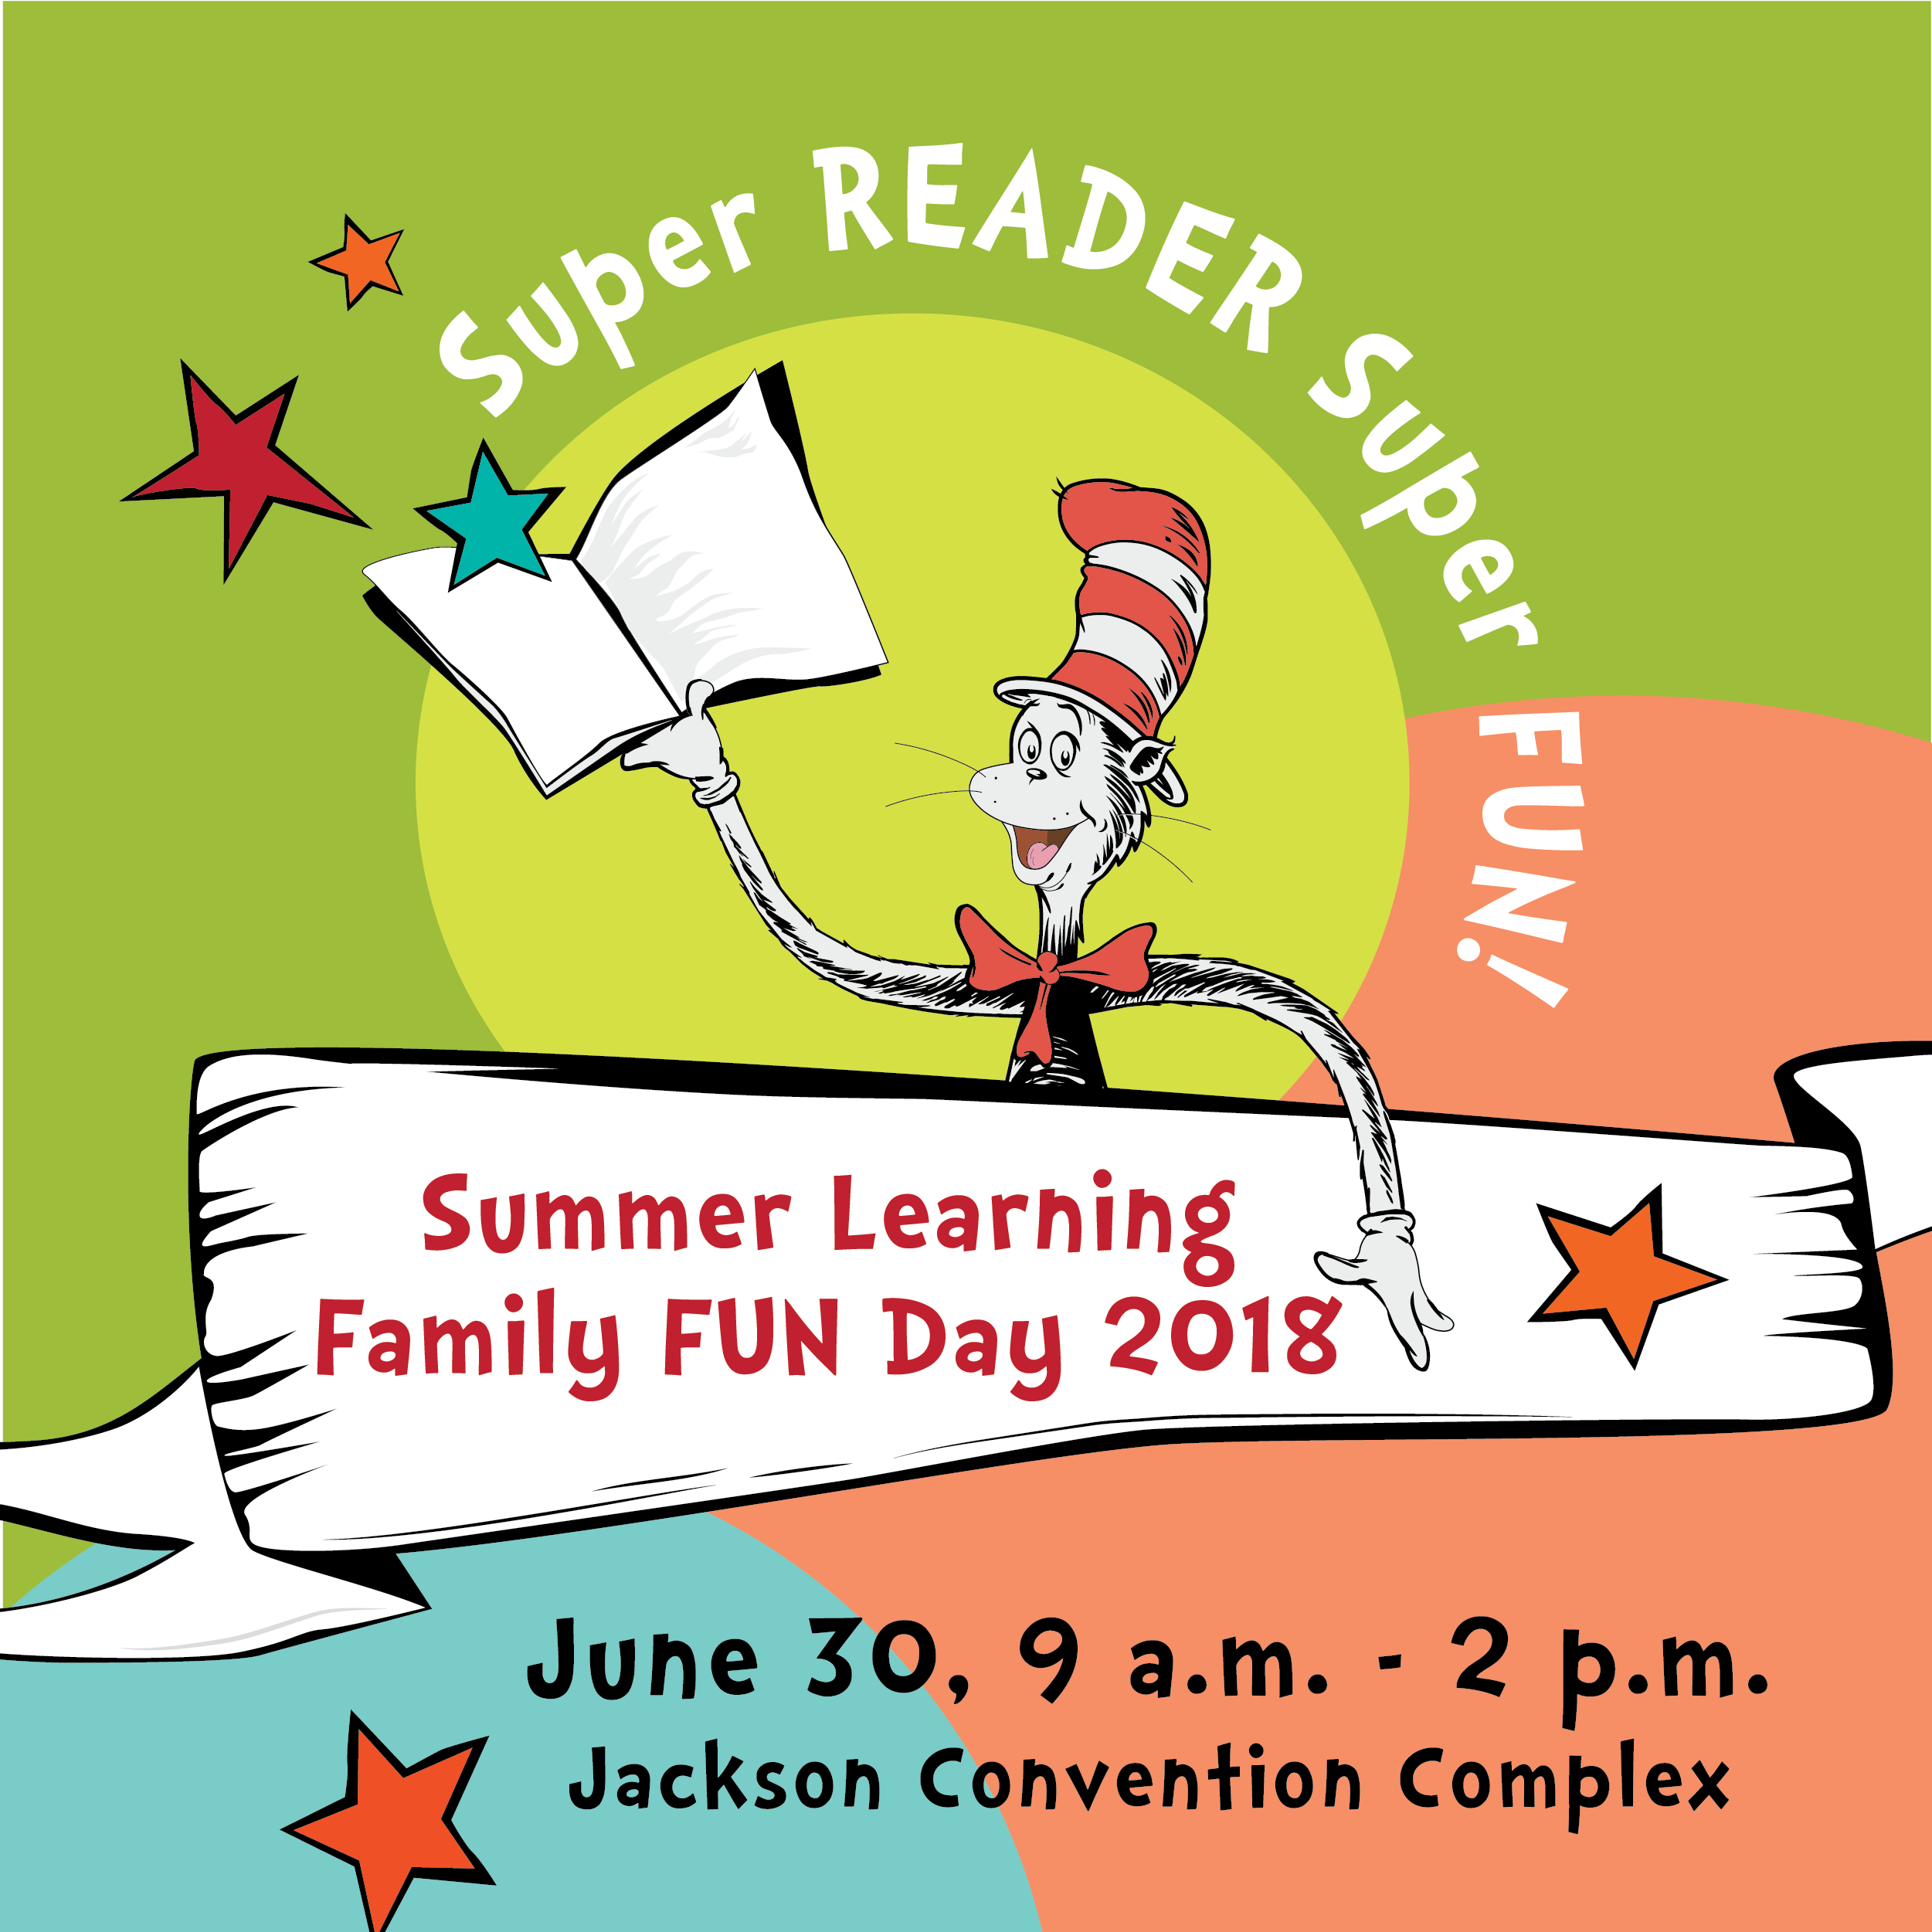 Register now for the FREE Summer Learning Day on June 30th!